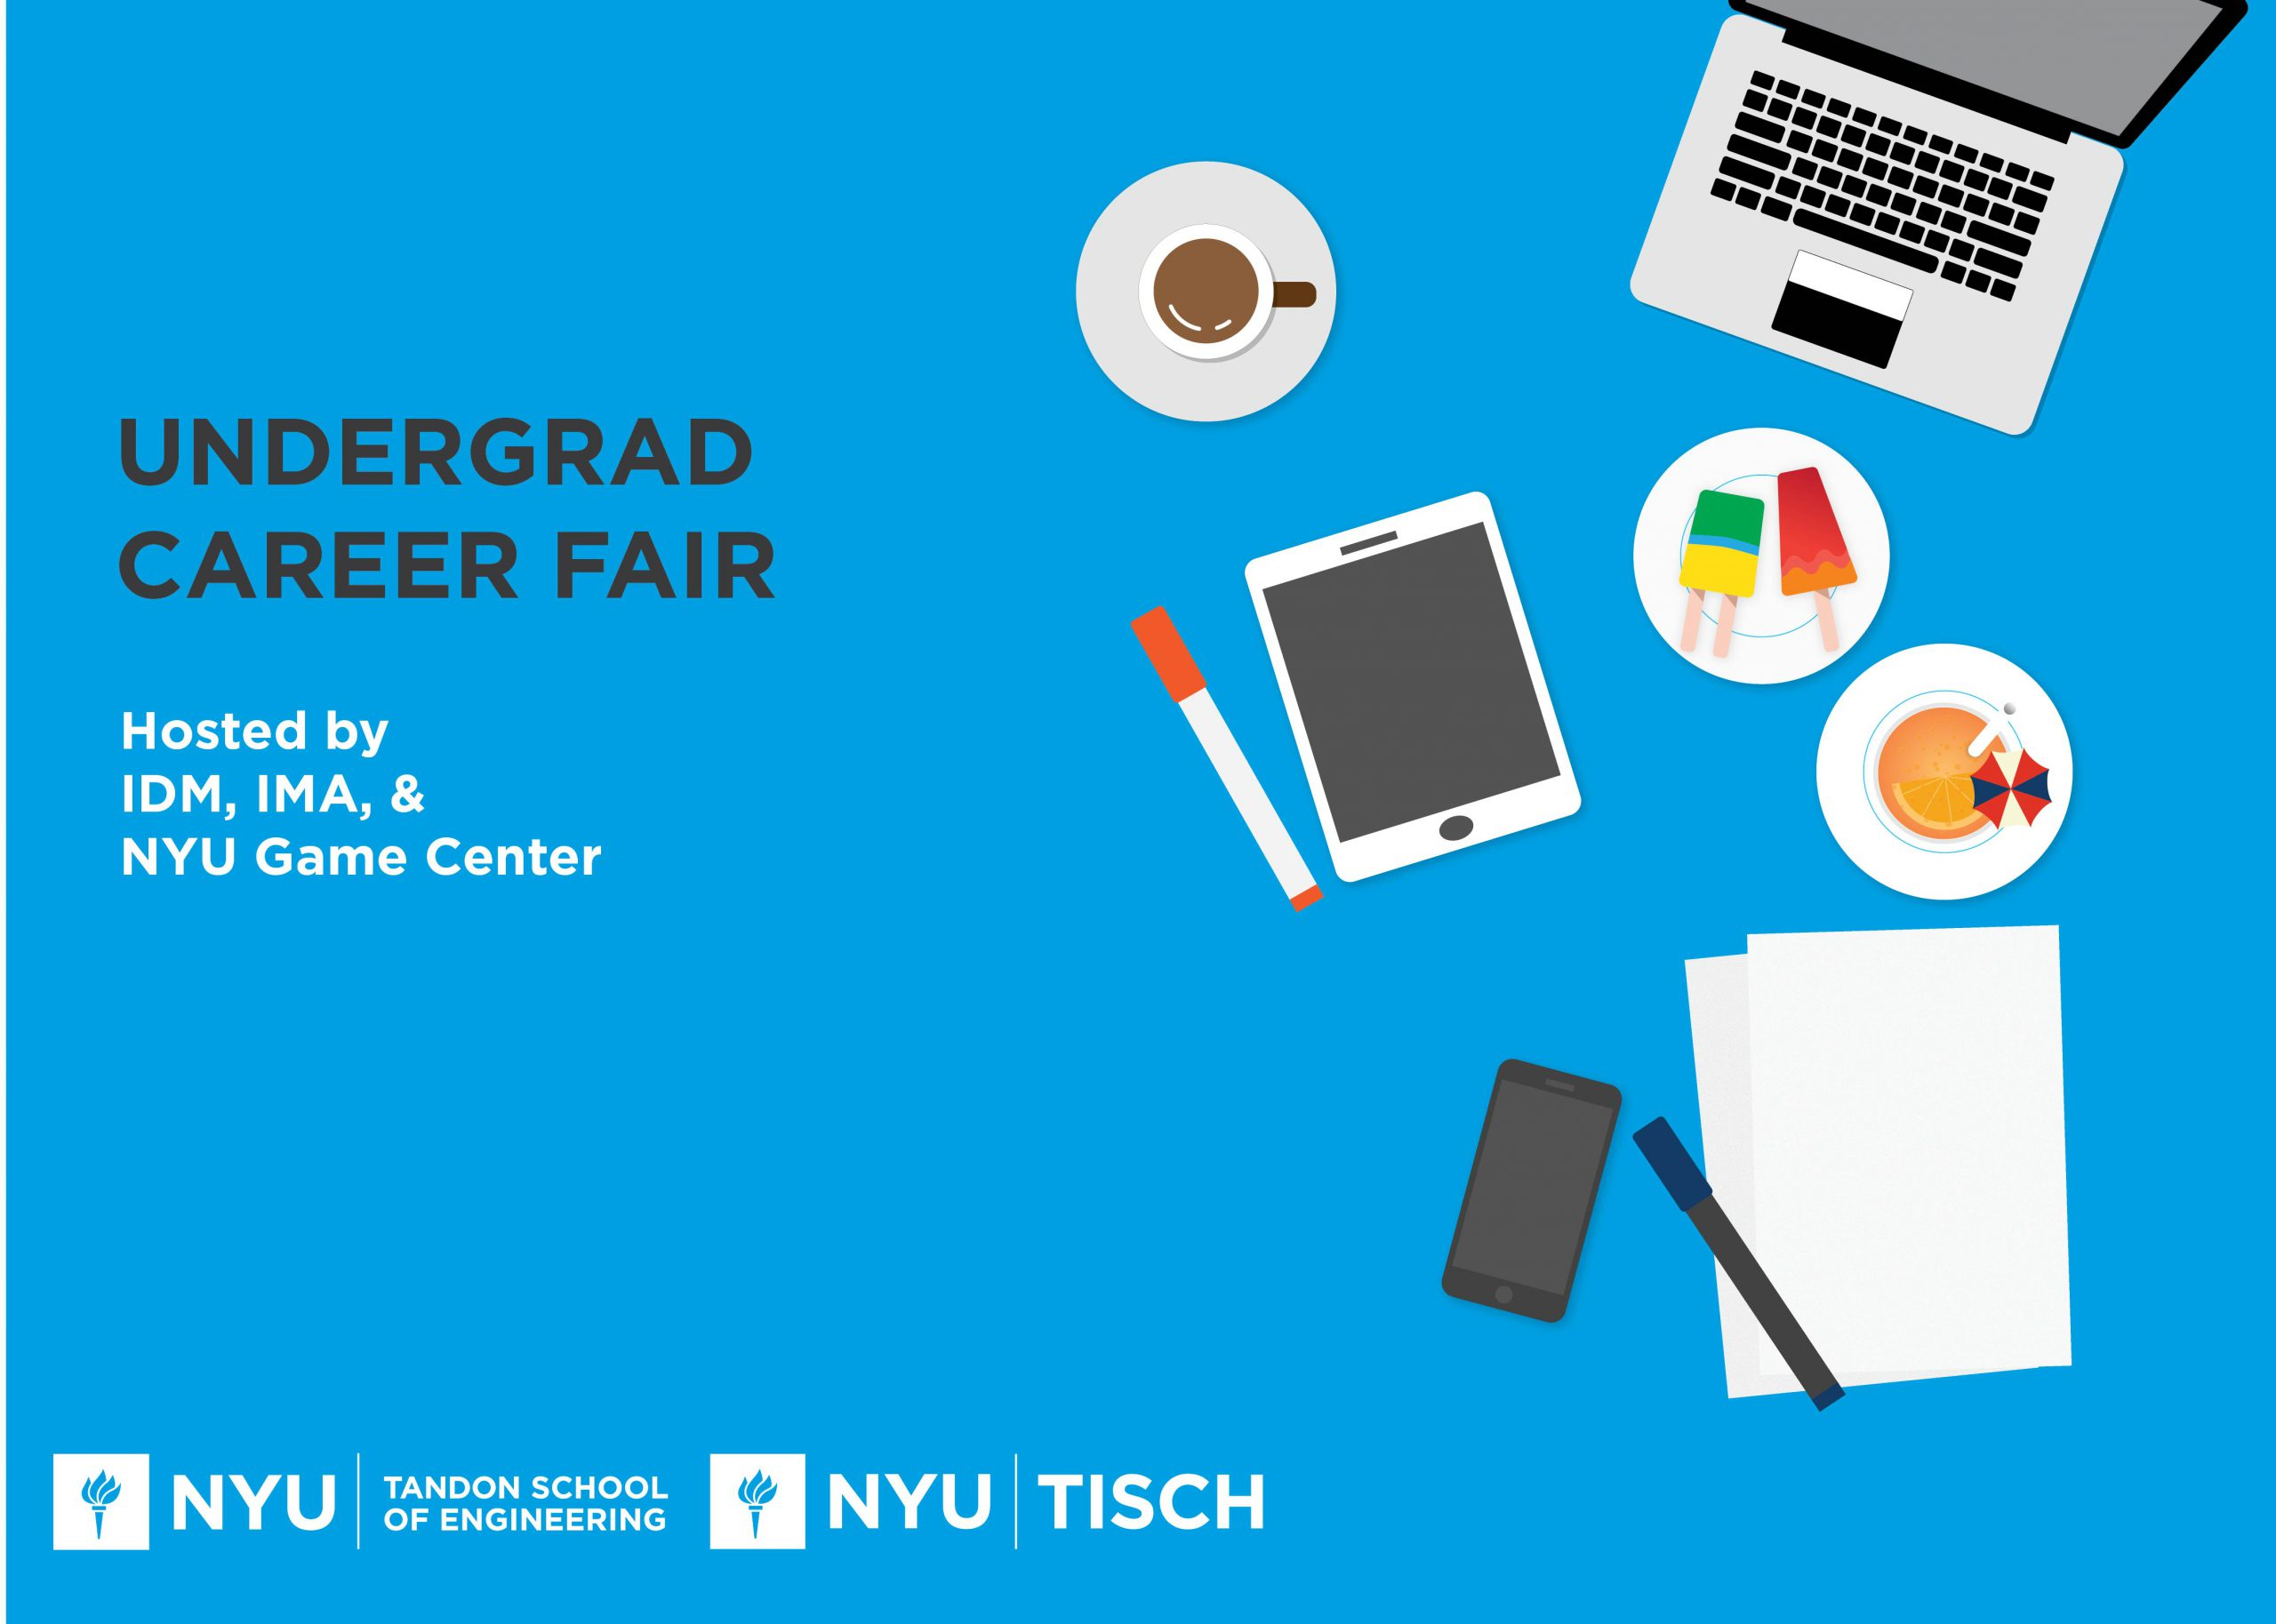 IDM/IMA/Tisch Games Undergrad Career Fair